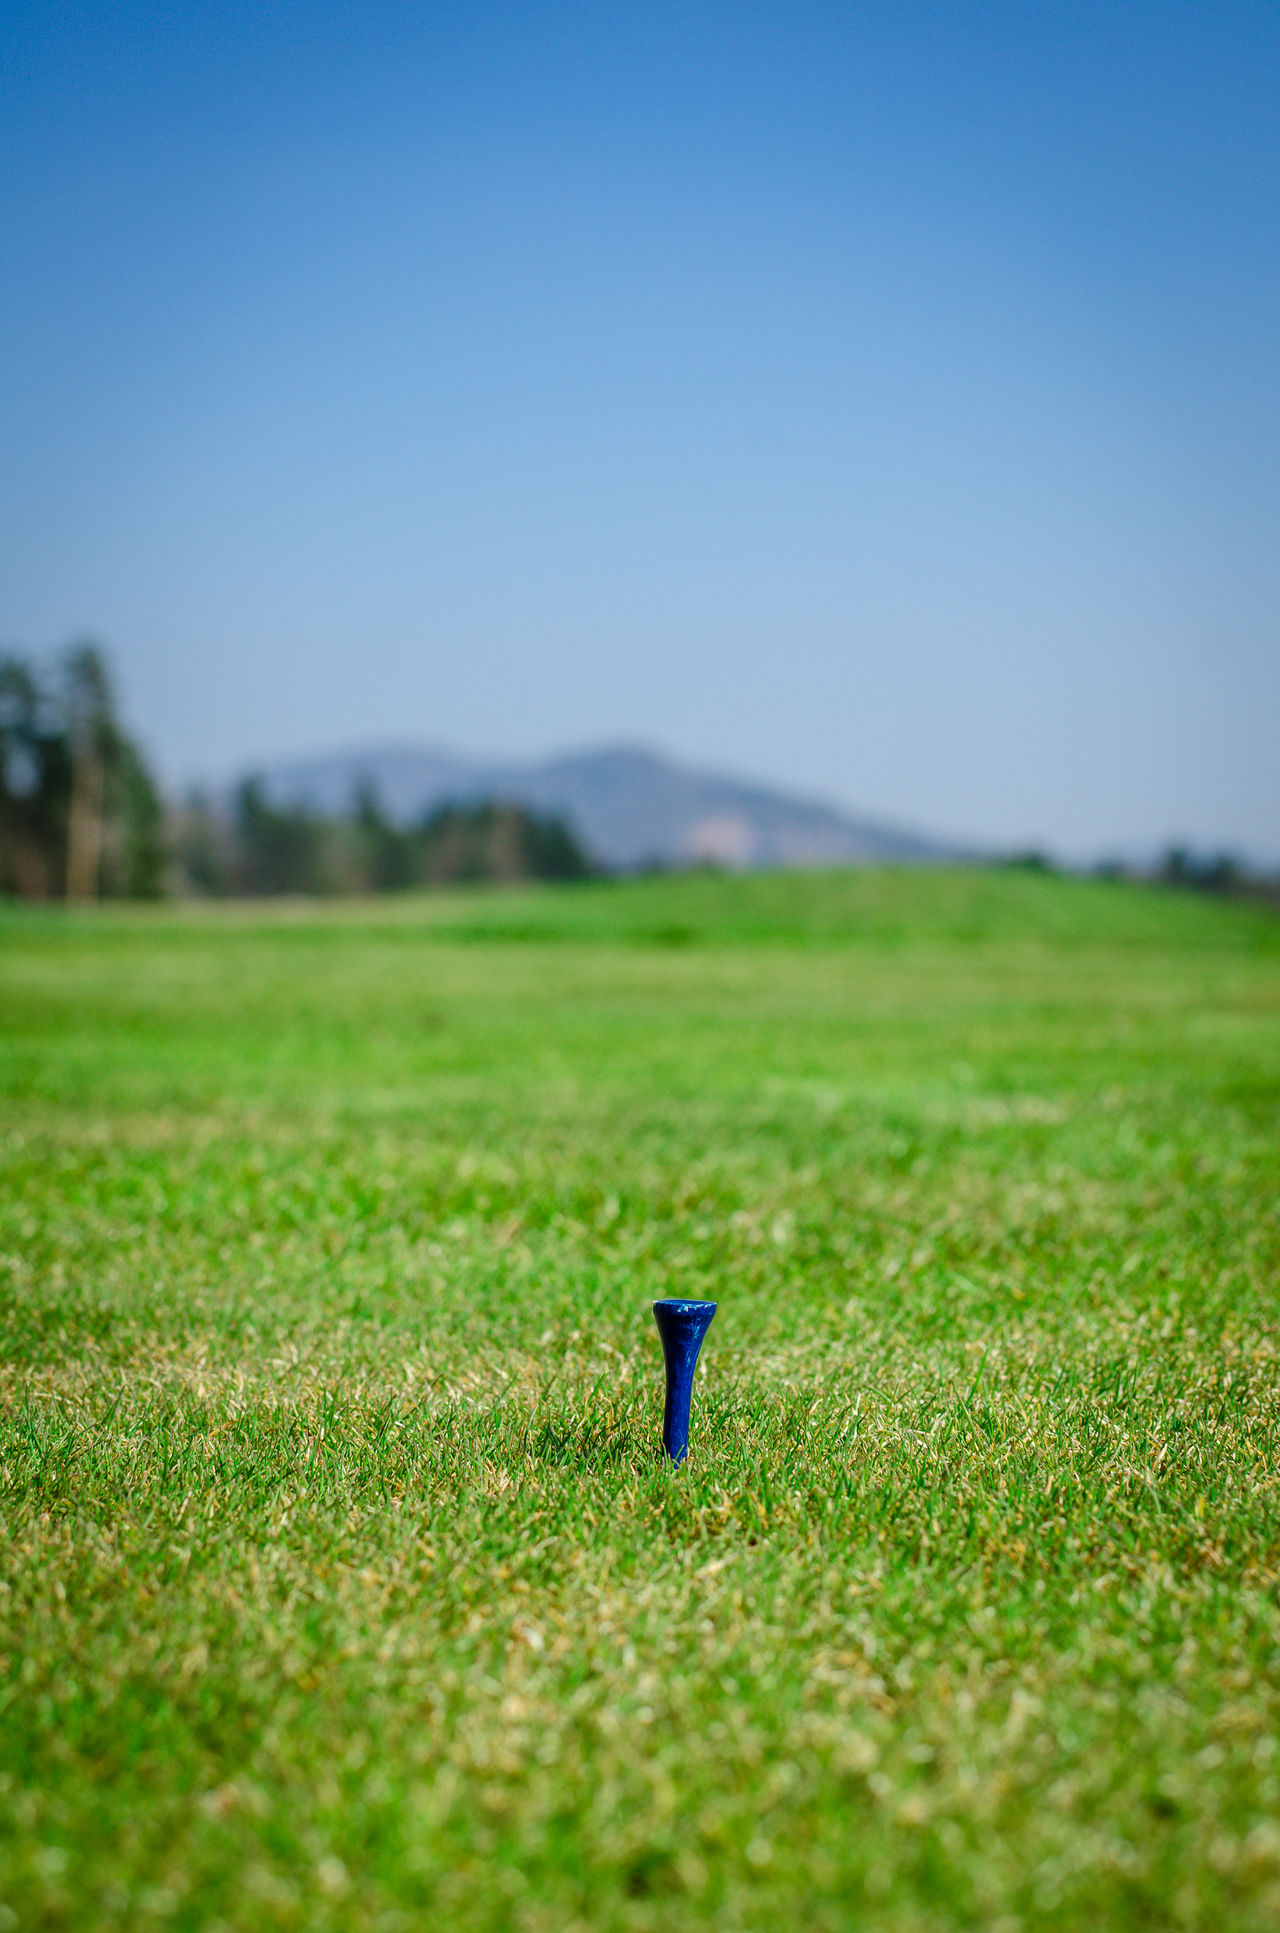 Empty tee on teeing area with green grass ahead and mountains in background. Soft focus or shallow depth of field. Ball Beauty In Nature Blue Club Day Field Golf Golf Ball Golf Club Golf Course Golfer Golfing Grass Grass Green Green Color Growth Landscape Nature No People Outdoors Sky Slovenia Stick Tee